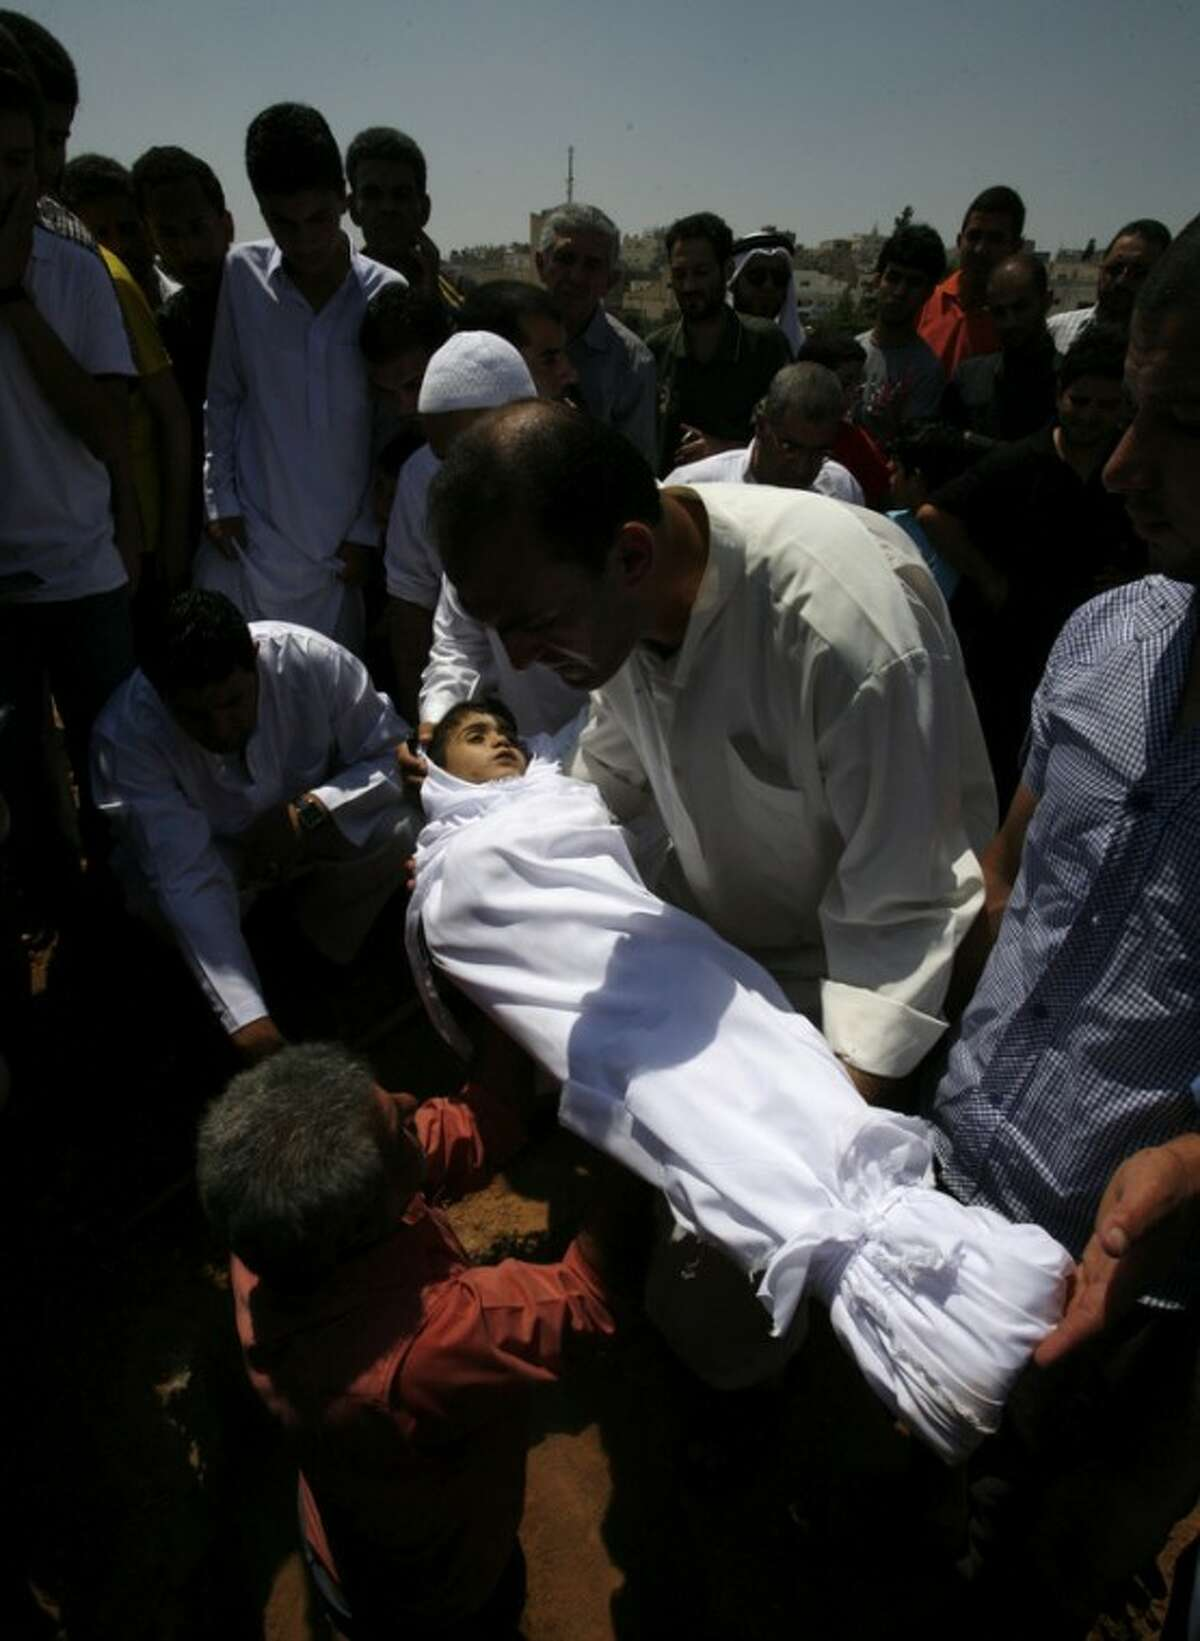 A relative holds the body of a six year old Syrian boy Bilal El-Lababidi during his funeral in Ramtha, Jordan, Friday July 27, 2012. The boy was shot dead by Syrian army as his parents and a dozen other refugees tried to cross a border to seek refuge in Jordan, his mother said. (AP Photo/Mohammad Hannon)